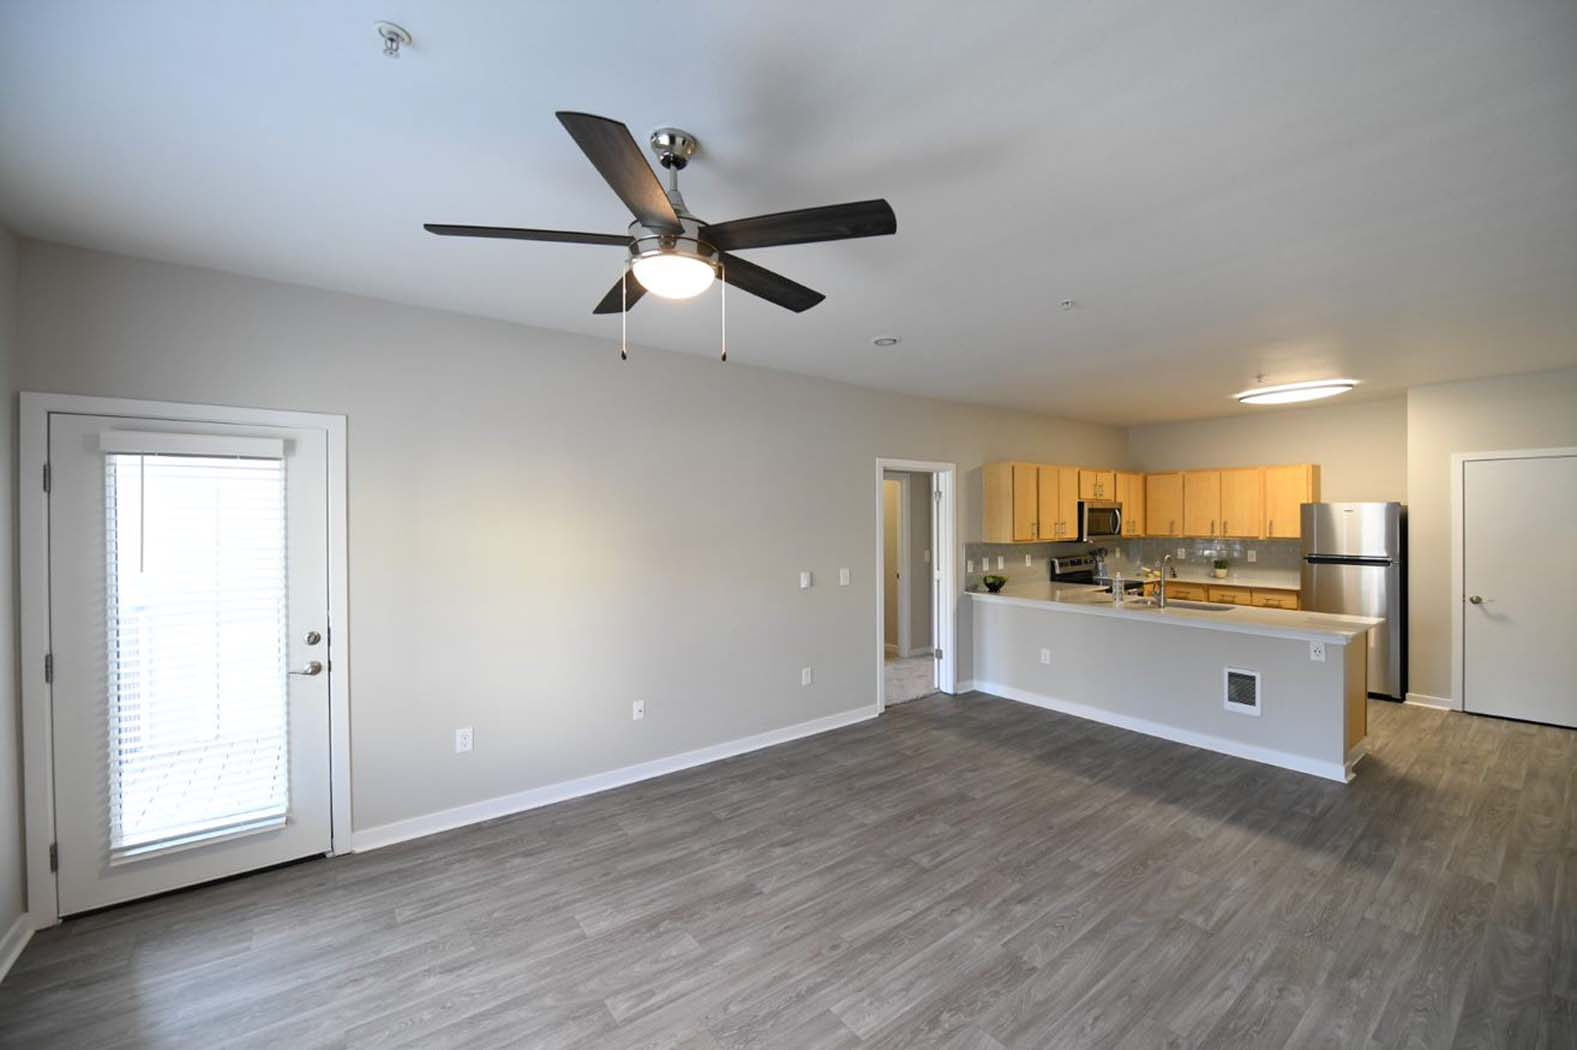 Wood Inspired Plank Flooring at Domaine at Villebois Apartment Homes, Wilsonville